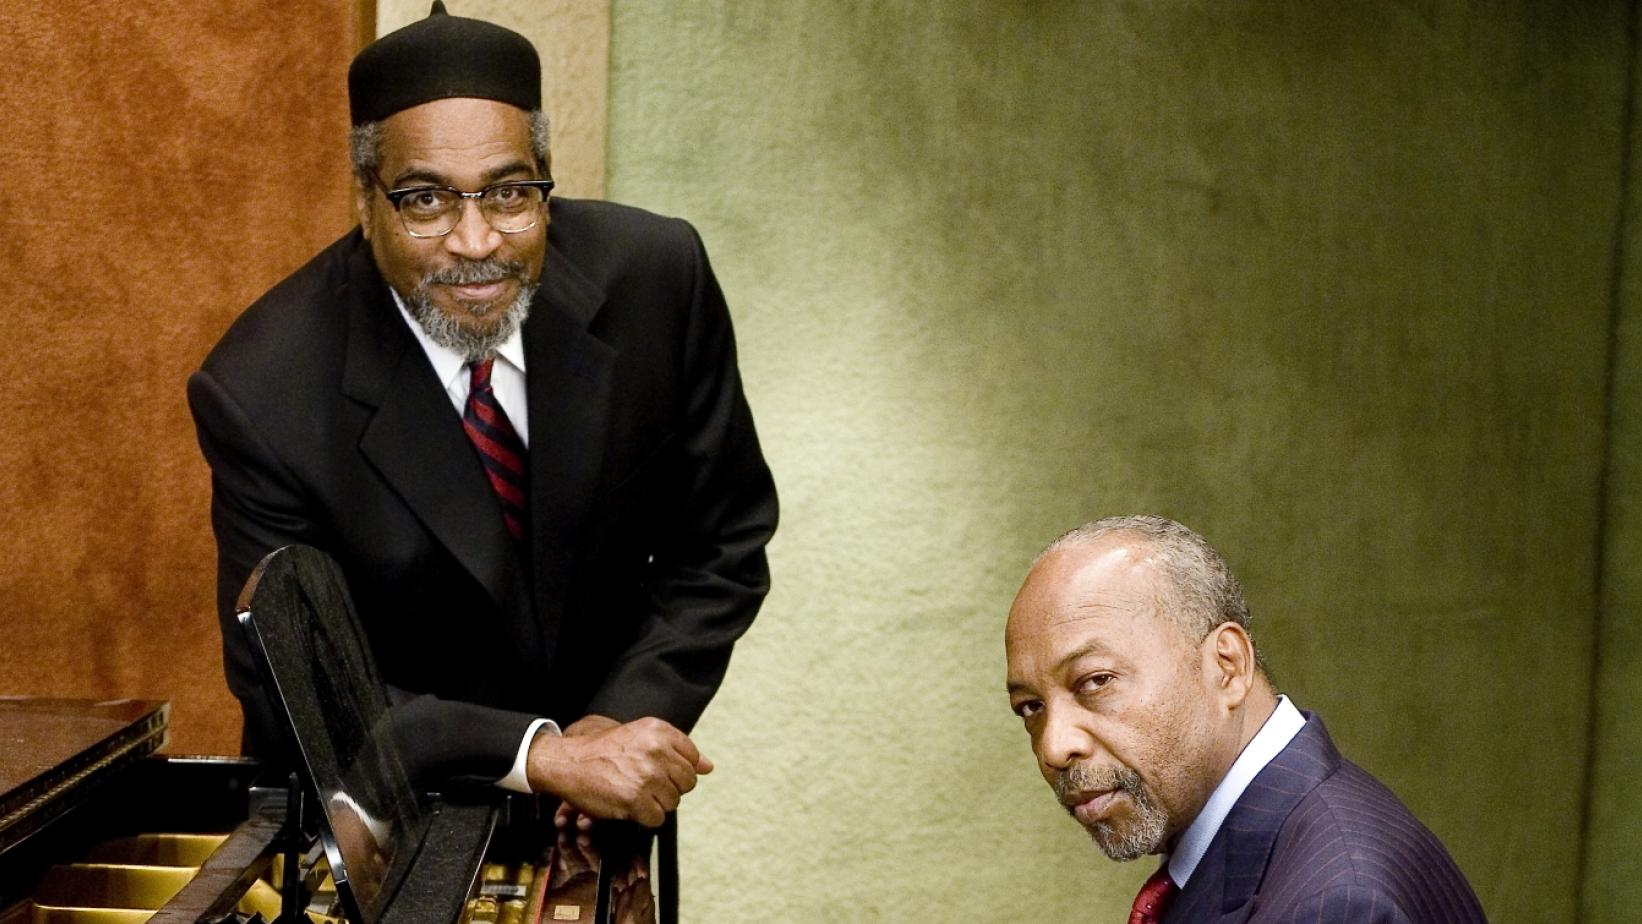 Kenny Gamble and Leon Huff at the piano